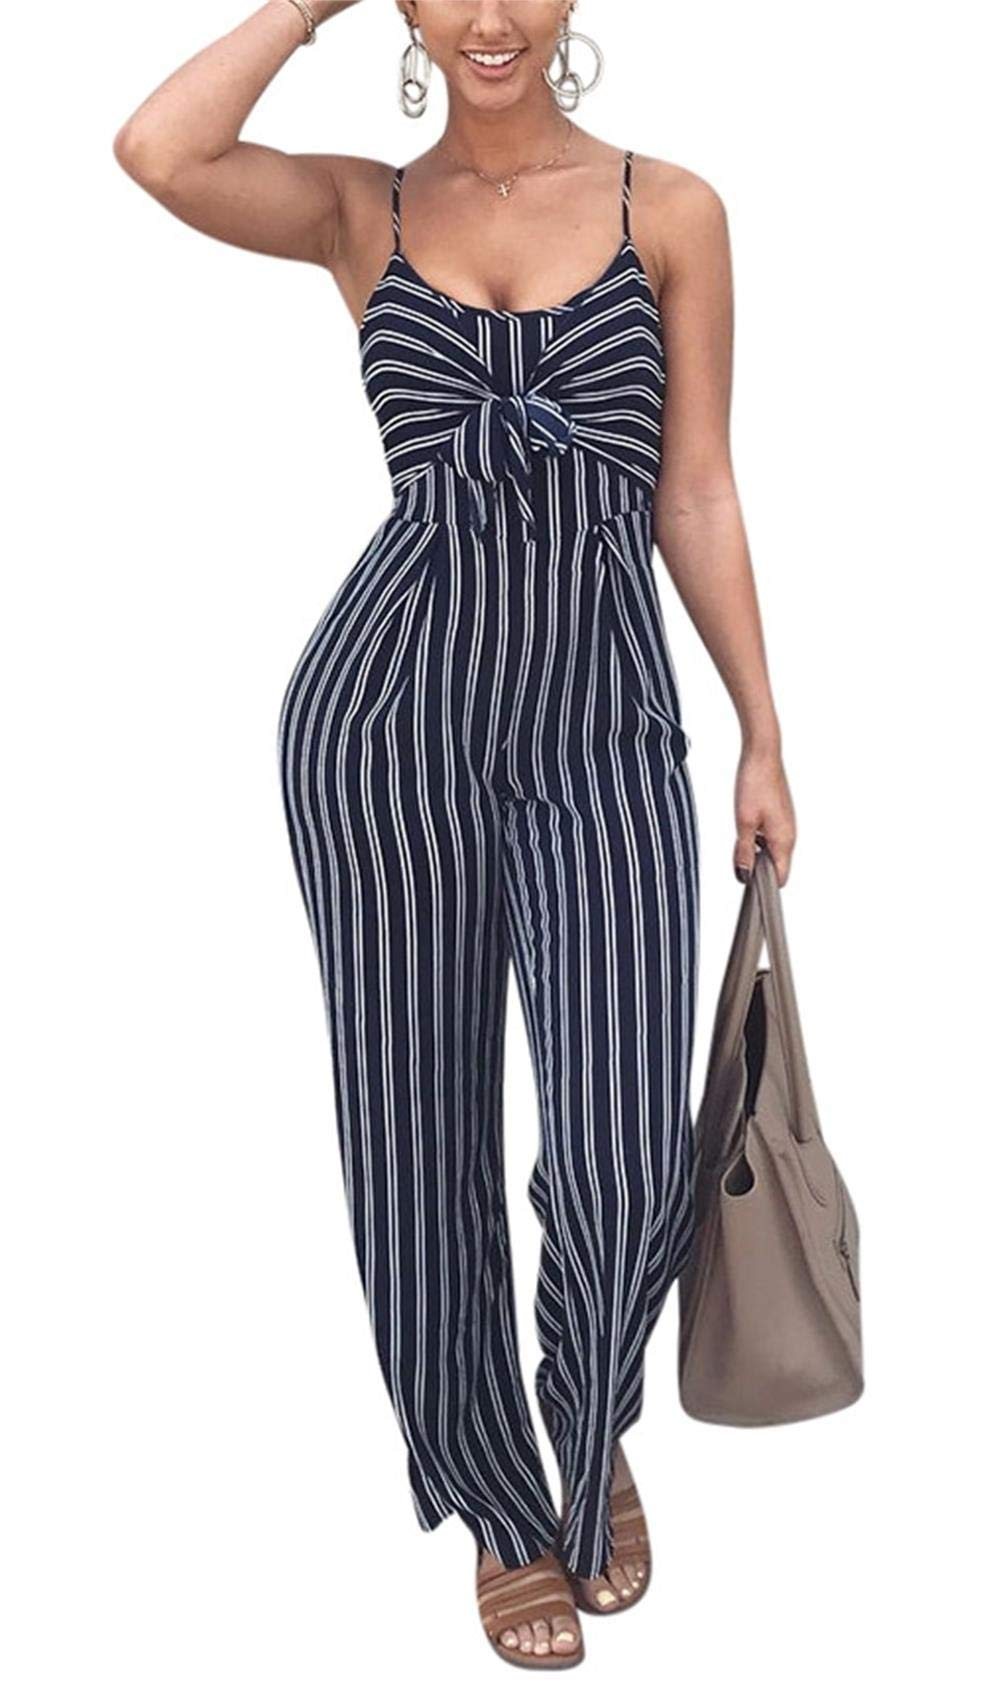 Women Spaghetti Strap Sleeveless Striped Jumpsuits Casual Loose Wide Leg Long Pants One Piece Jumpsuit Romper